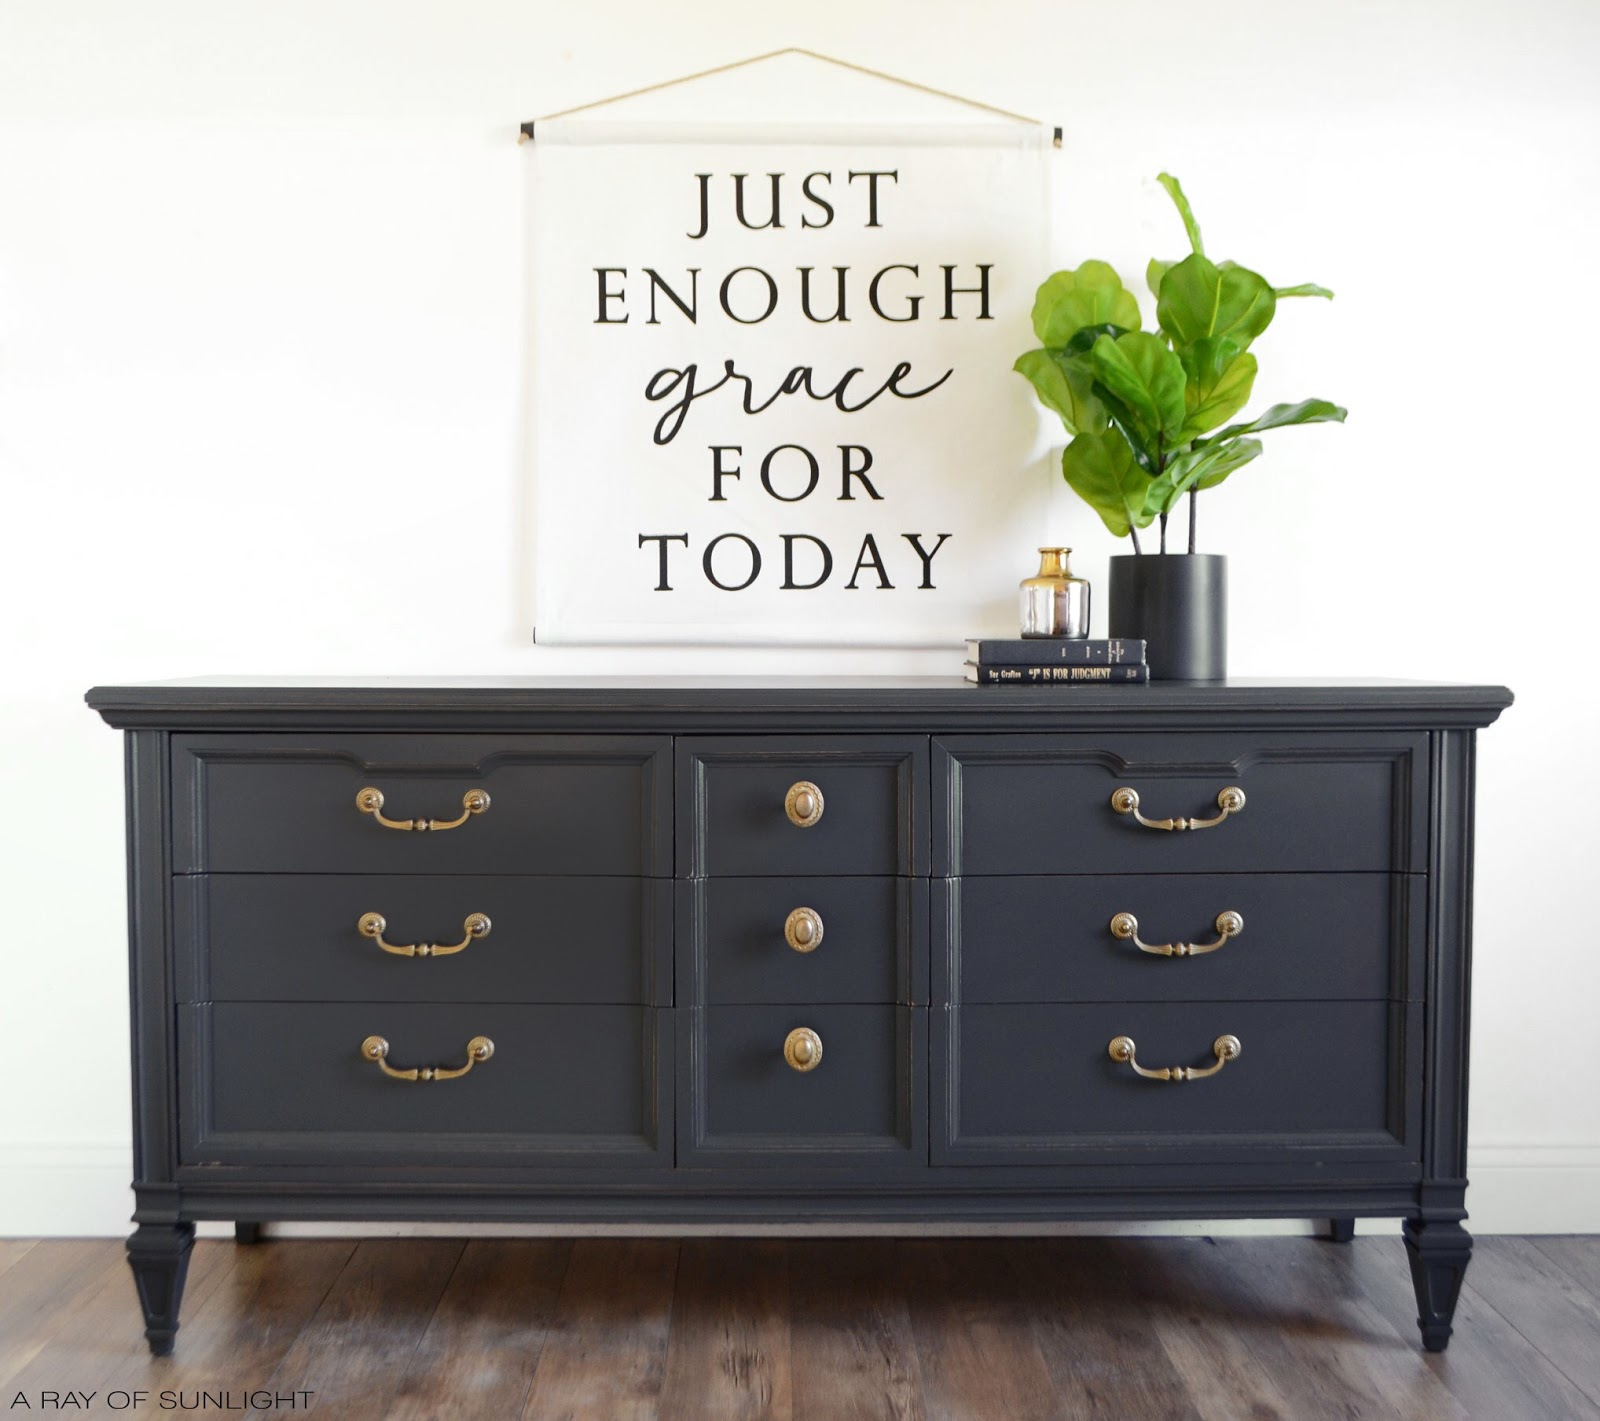 This vintage modern dresser got a complete makeover. From grey chalk paint, updated gold hardware, and freshly renewed drawers. I love how this deep grey finish is perfect for any home decor style. From farmhouse, to modern, to eclectic, and more! #farmhousedecor #furnituremakeover #furnituretransformation #paintedfurniture #chalkpaintedfurniture #modernfarmhouse #mcmfurniture #neutralfurniture #howtopaintfurniture